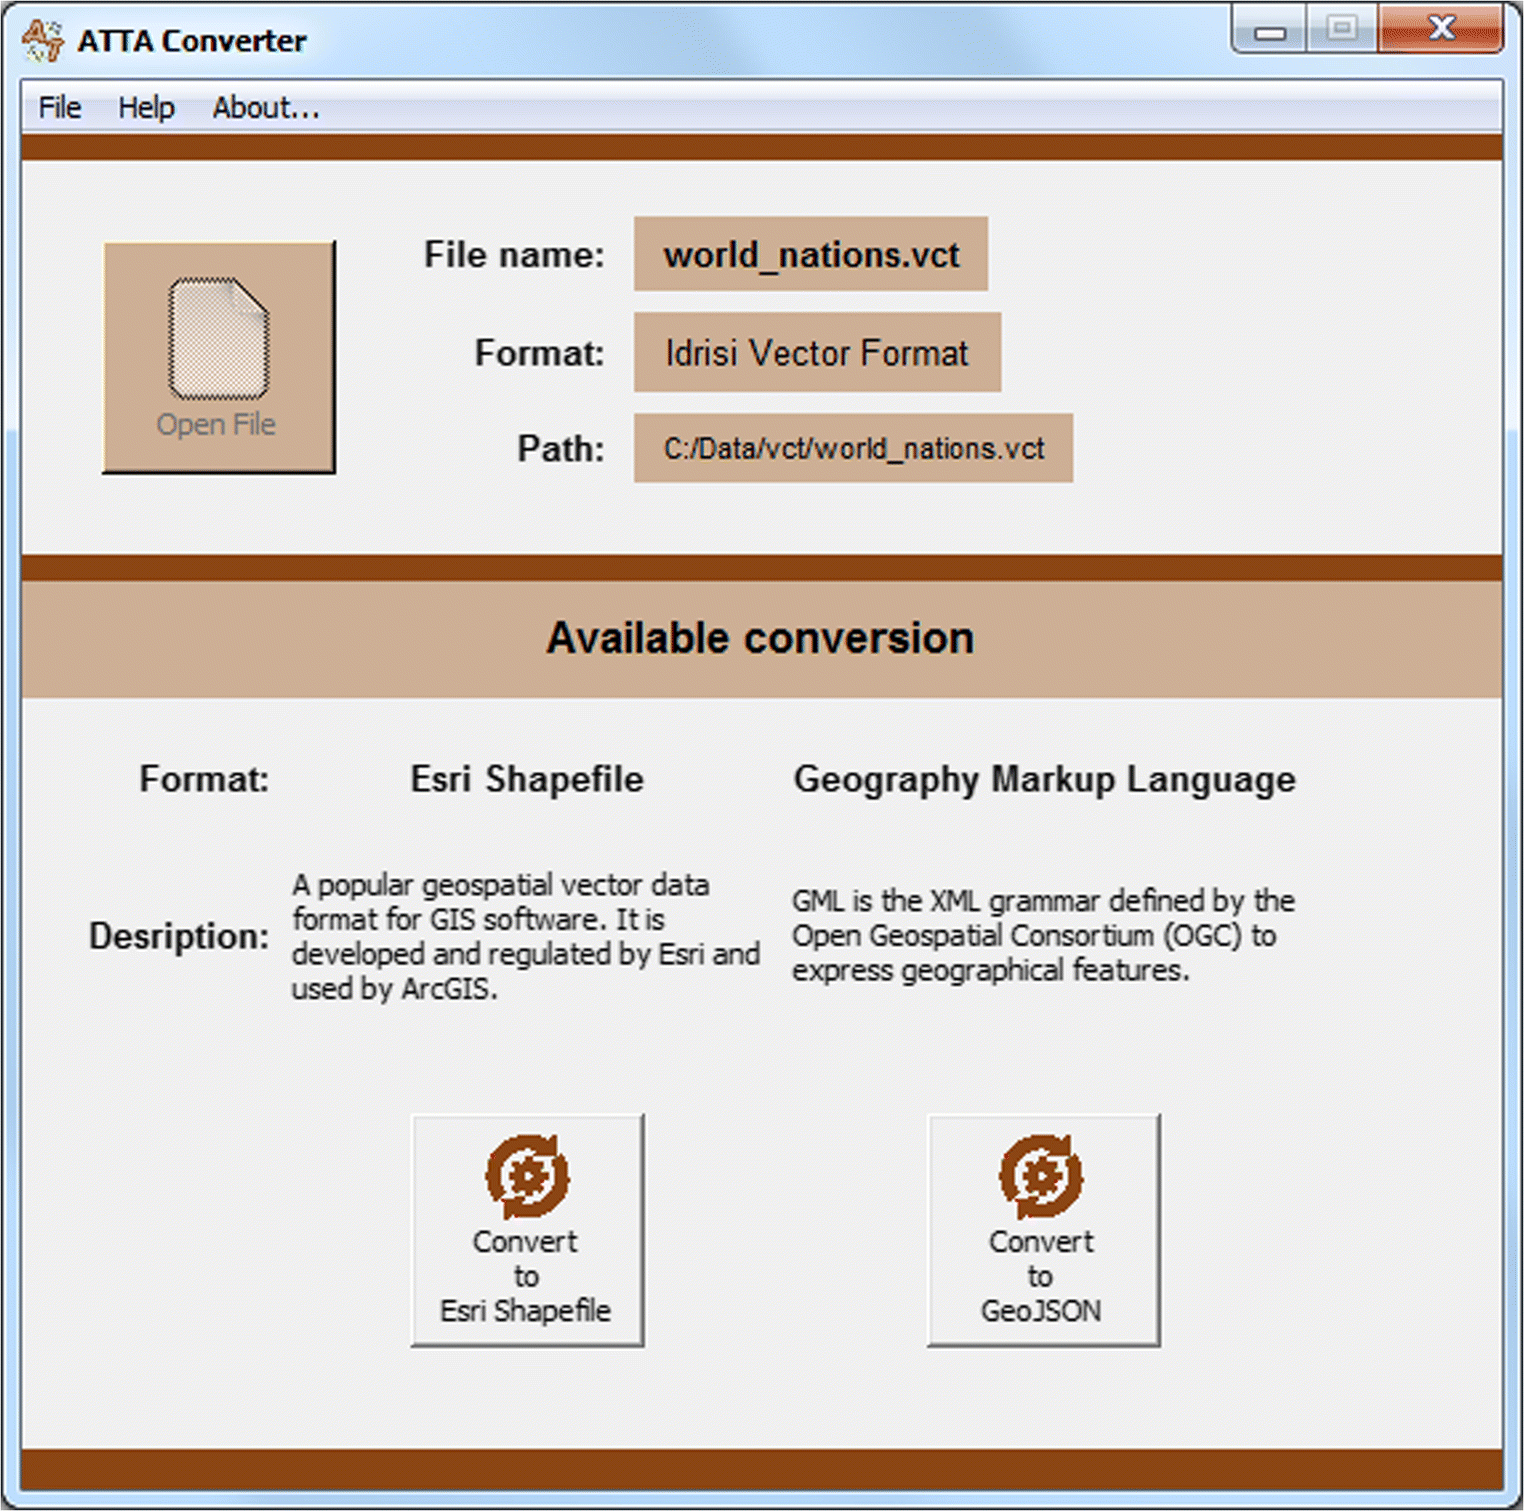 ATTA converter: software for converting data between ArcGIS